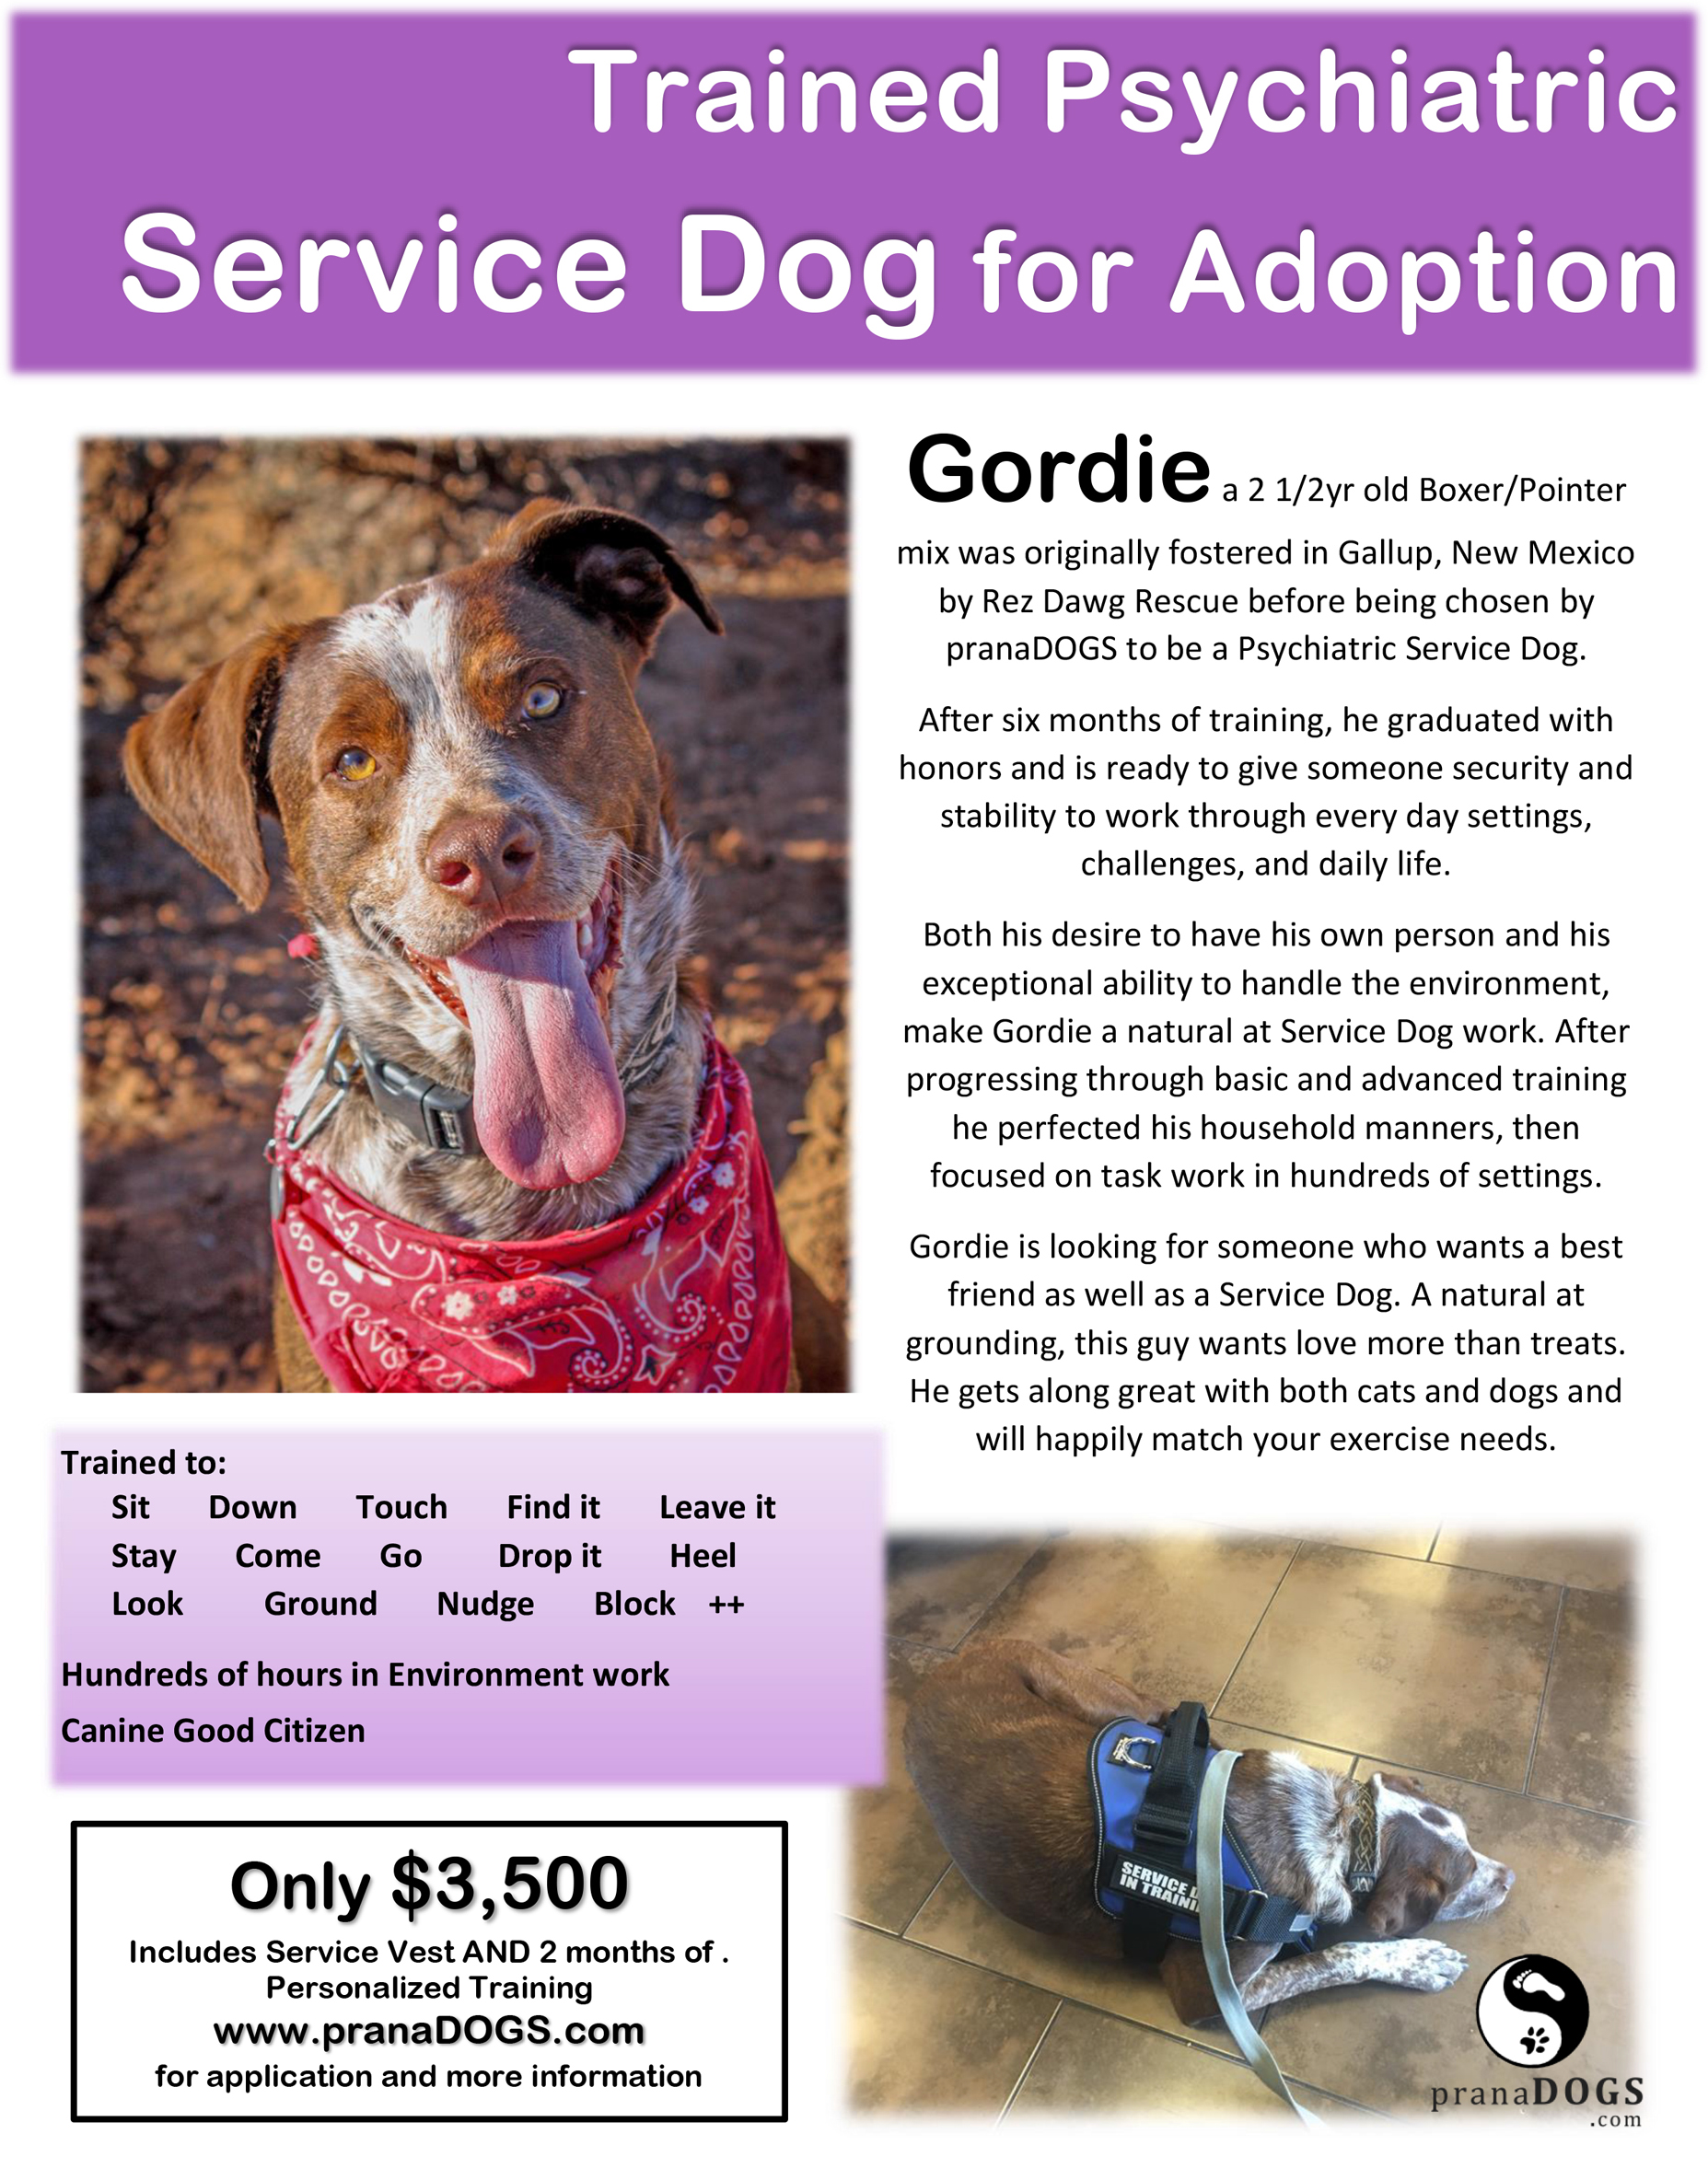 Trained Psychiatric Service Dog for Adoption